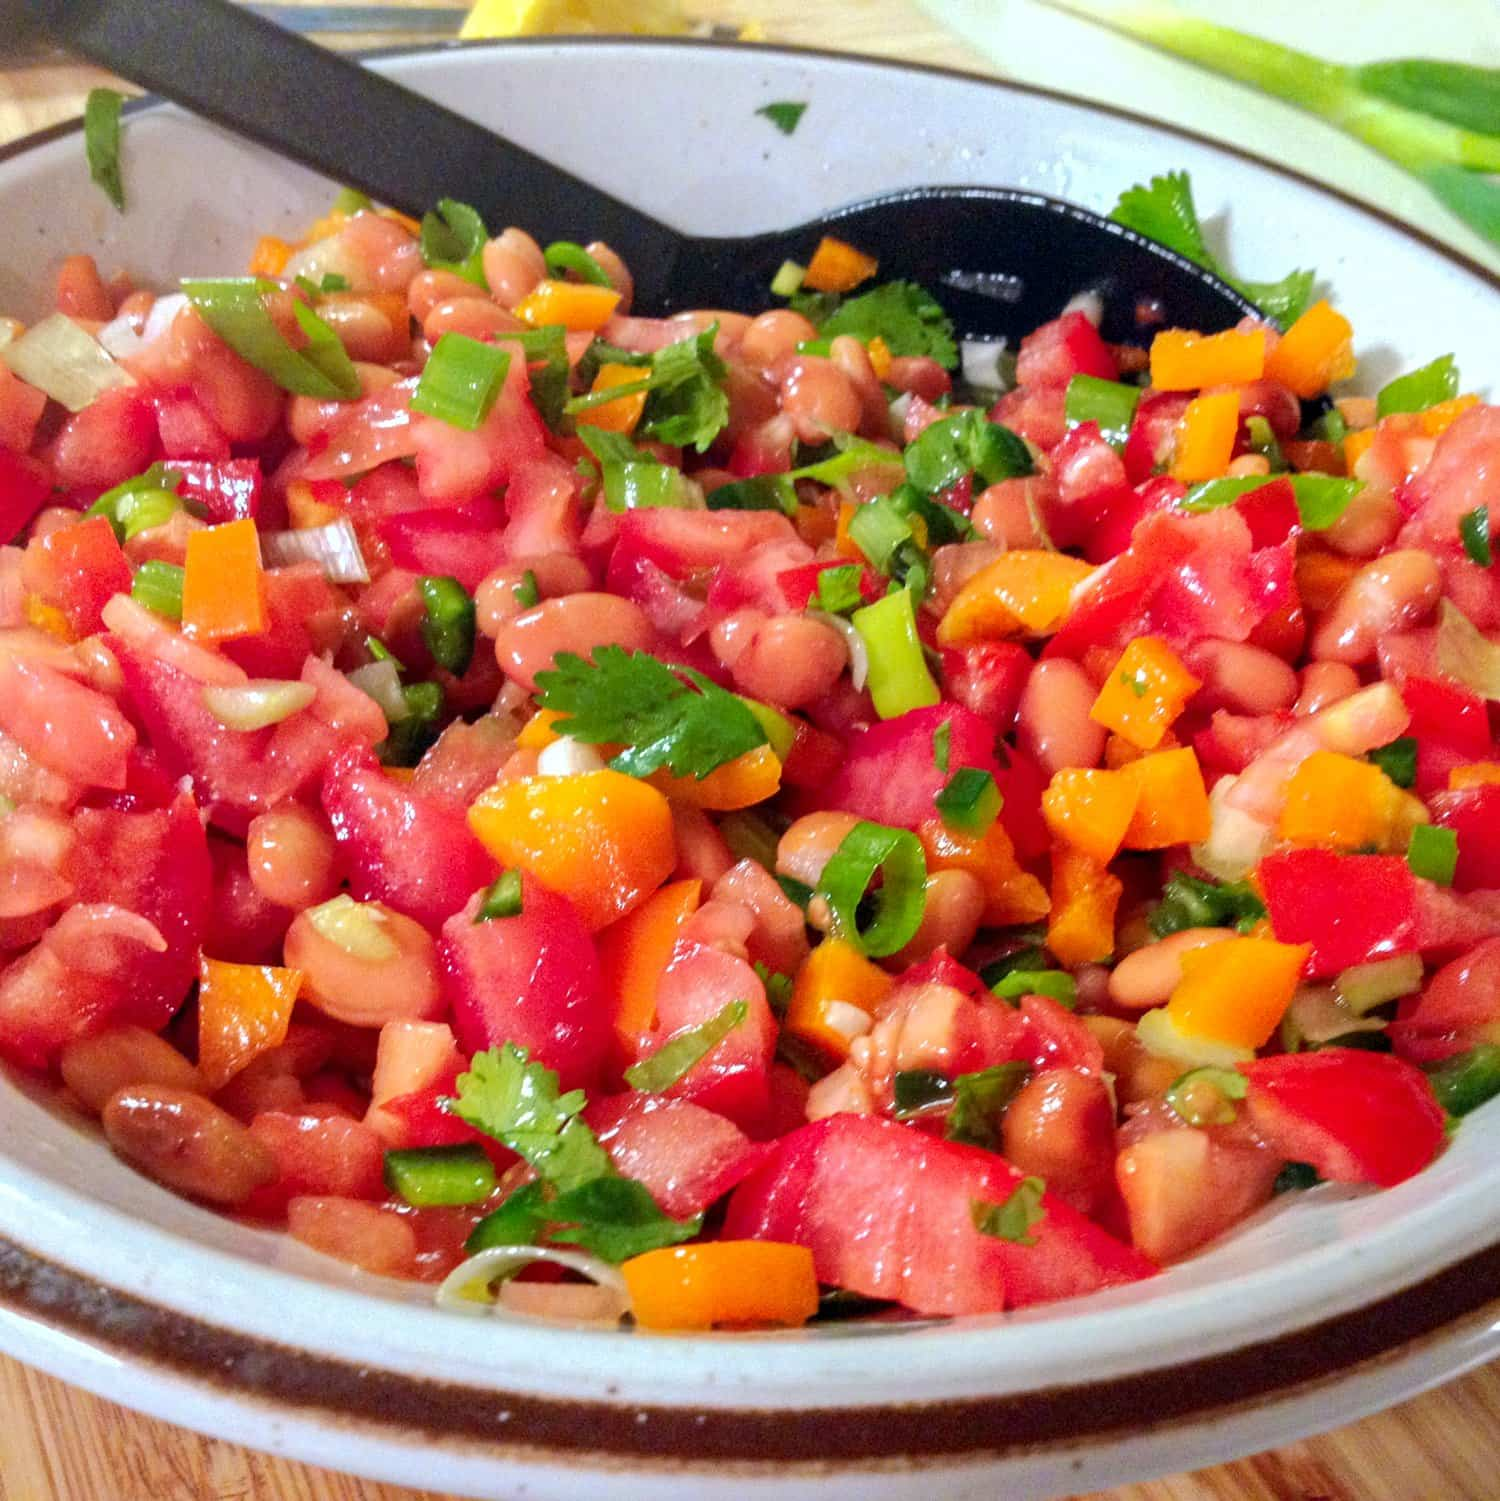 The Mexican Pinto Bean Salad with Jalapeno pepper is a super easy meatless recipe that can be made in no time. It is suitable all year around, and it is a good source of protein and fiber for all of us.